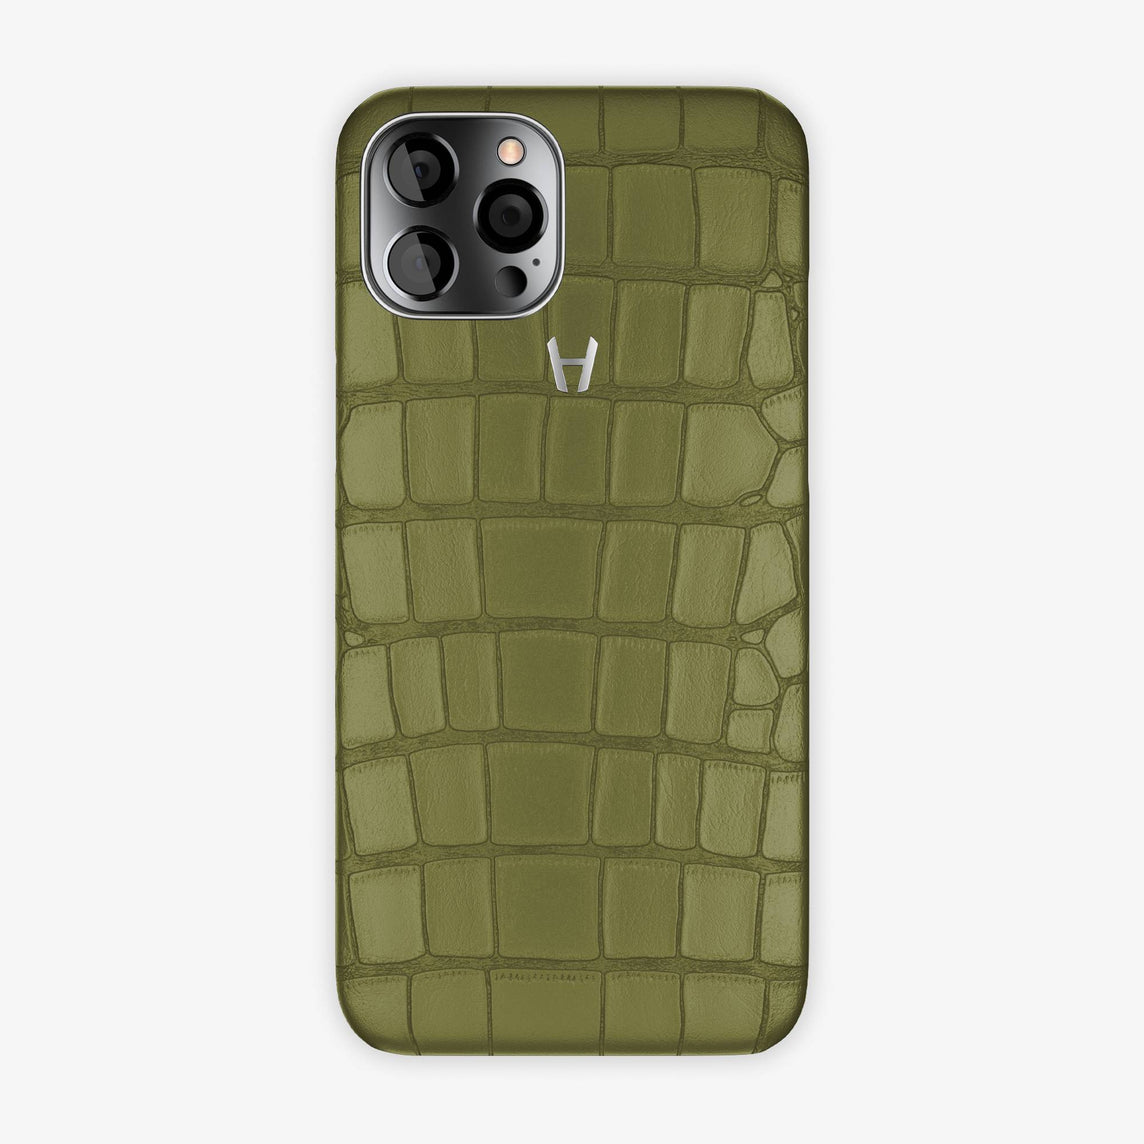 Alligator Case iPhone 12 Pro Max | Khaki - Stainless Steel